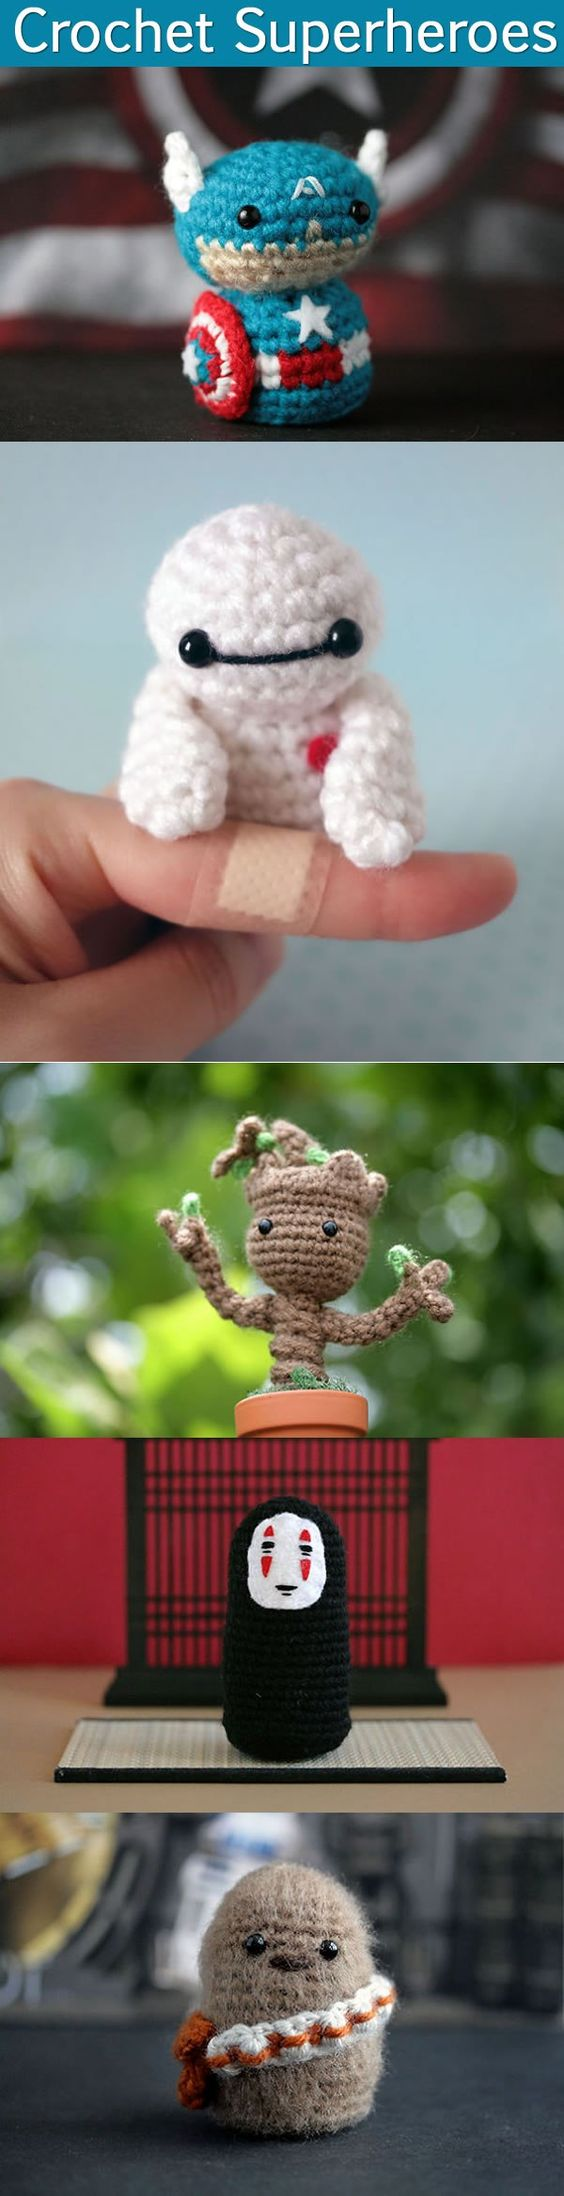 Anamaria Androne, the founder & craft artist at the online shop & blogMerique Crochet. Using her talented crochet skills plus wild imagination, she made a series of cute Game of Throne characters, and two amazing legends:David Jones and Alan Rickman. … Continued: